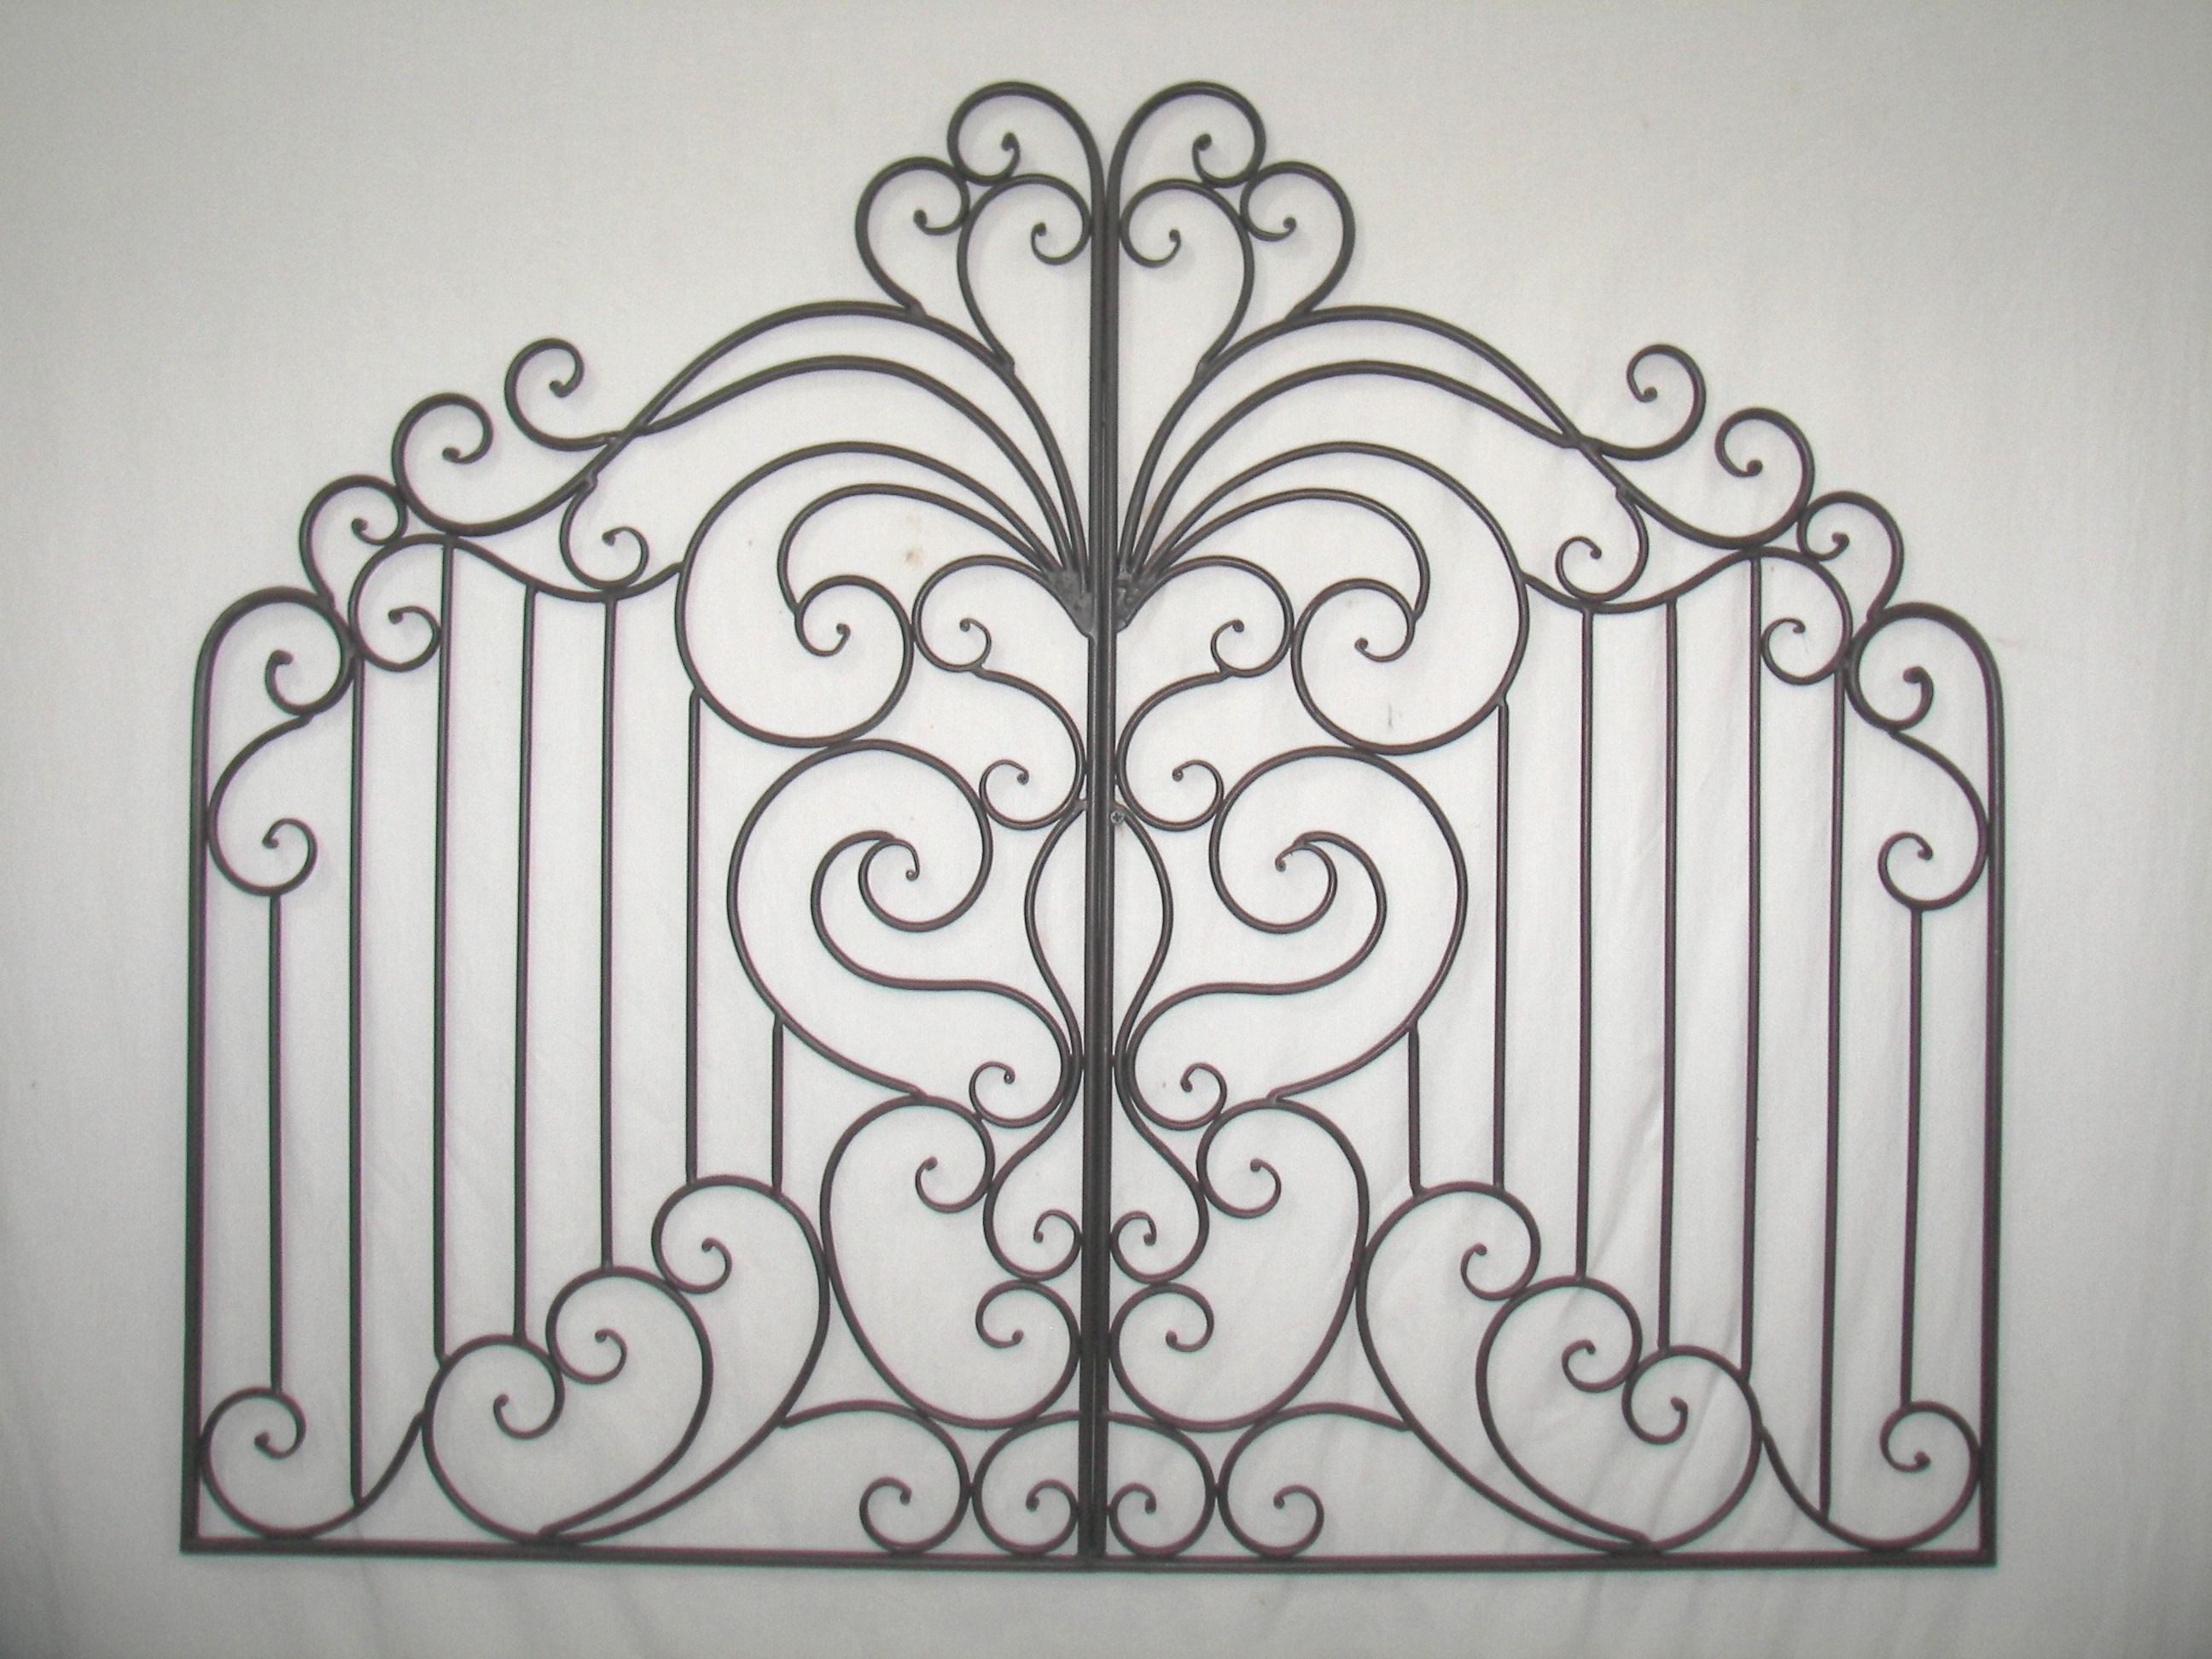 Wrought Iron Wall Grille Natalatuscan41''wroughtirongardengatewallgrillethis